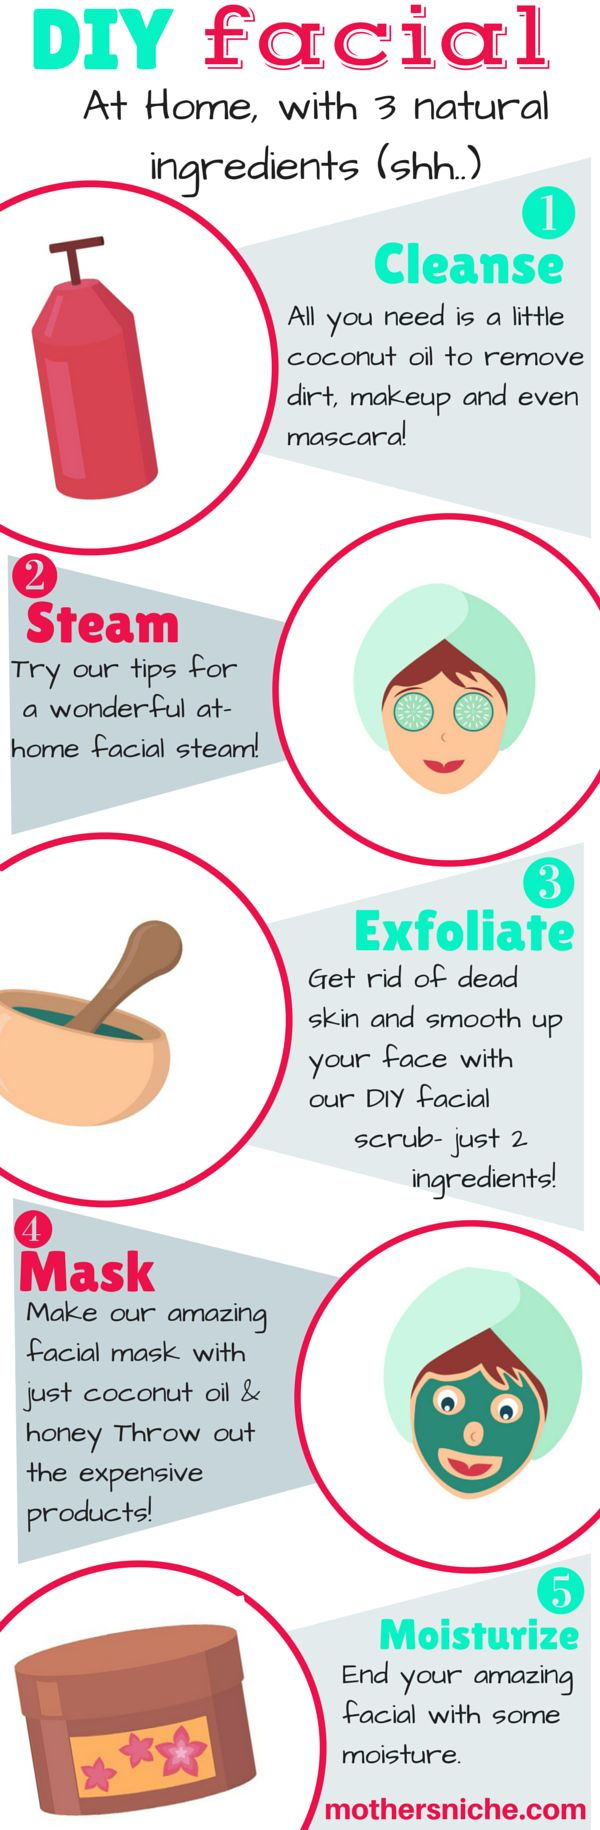 The good news? You can throw out your expensive face products and start using these recipes for a DIY facial at home. Better news? You will never go back.